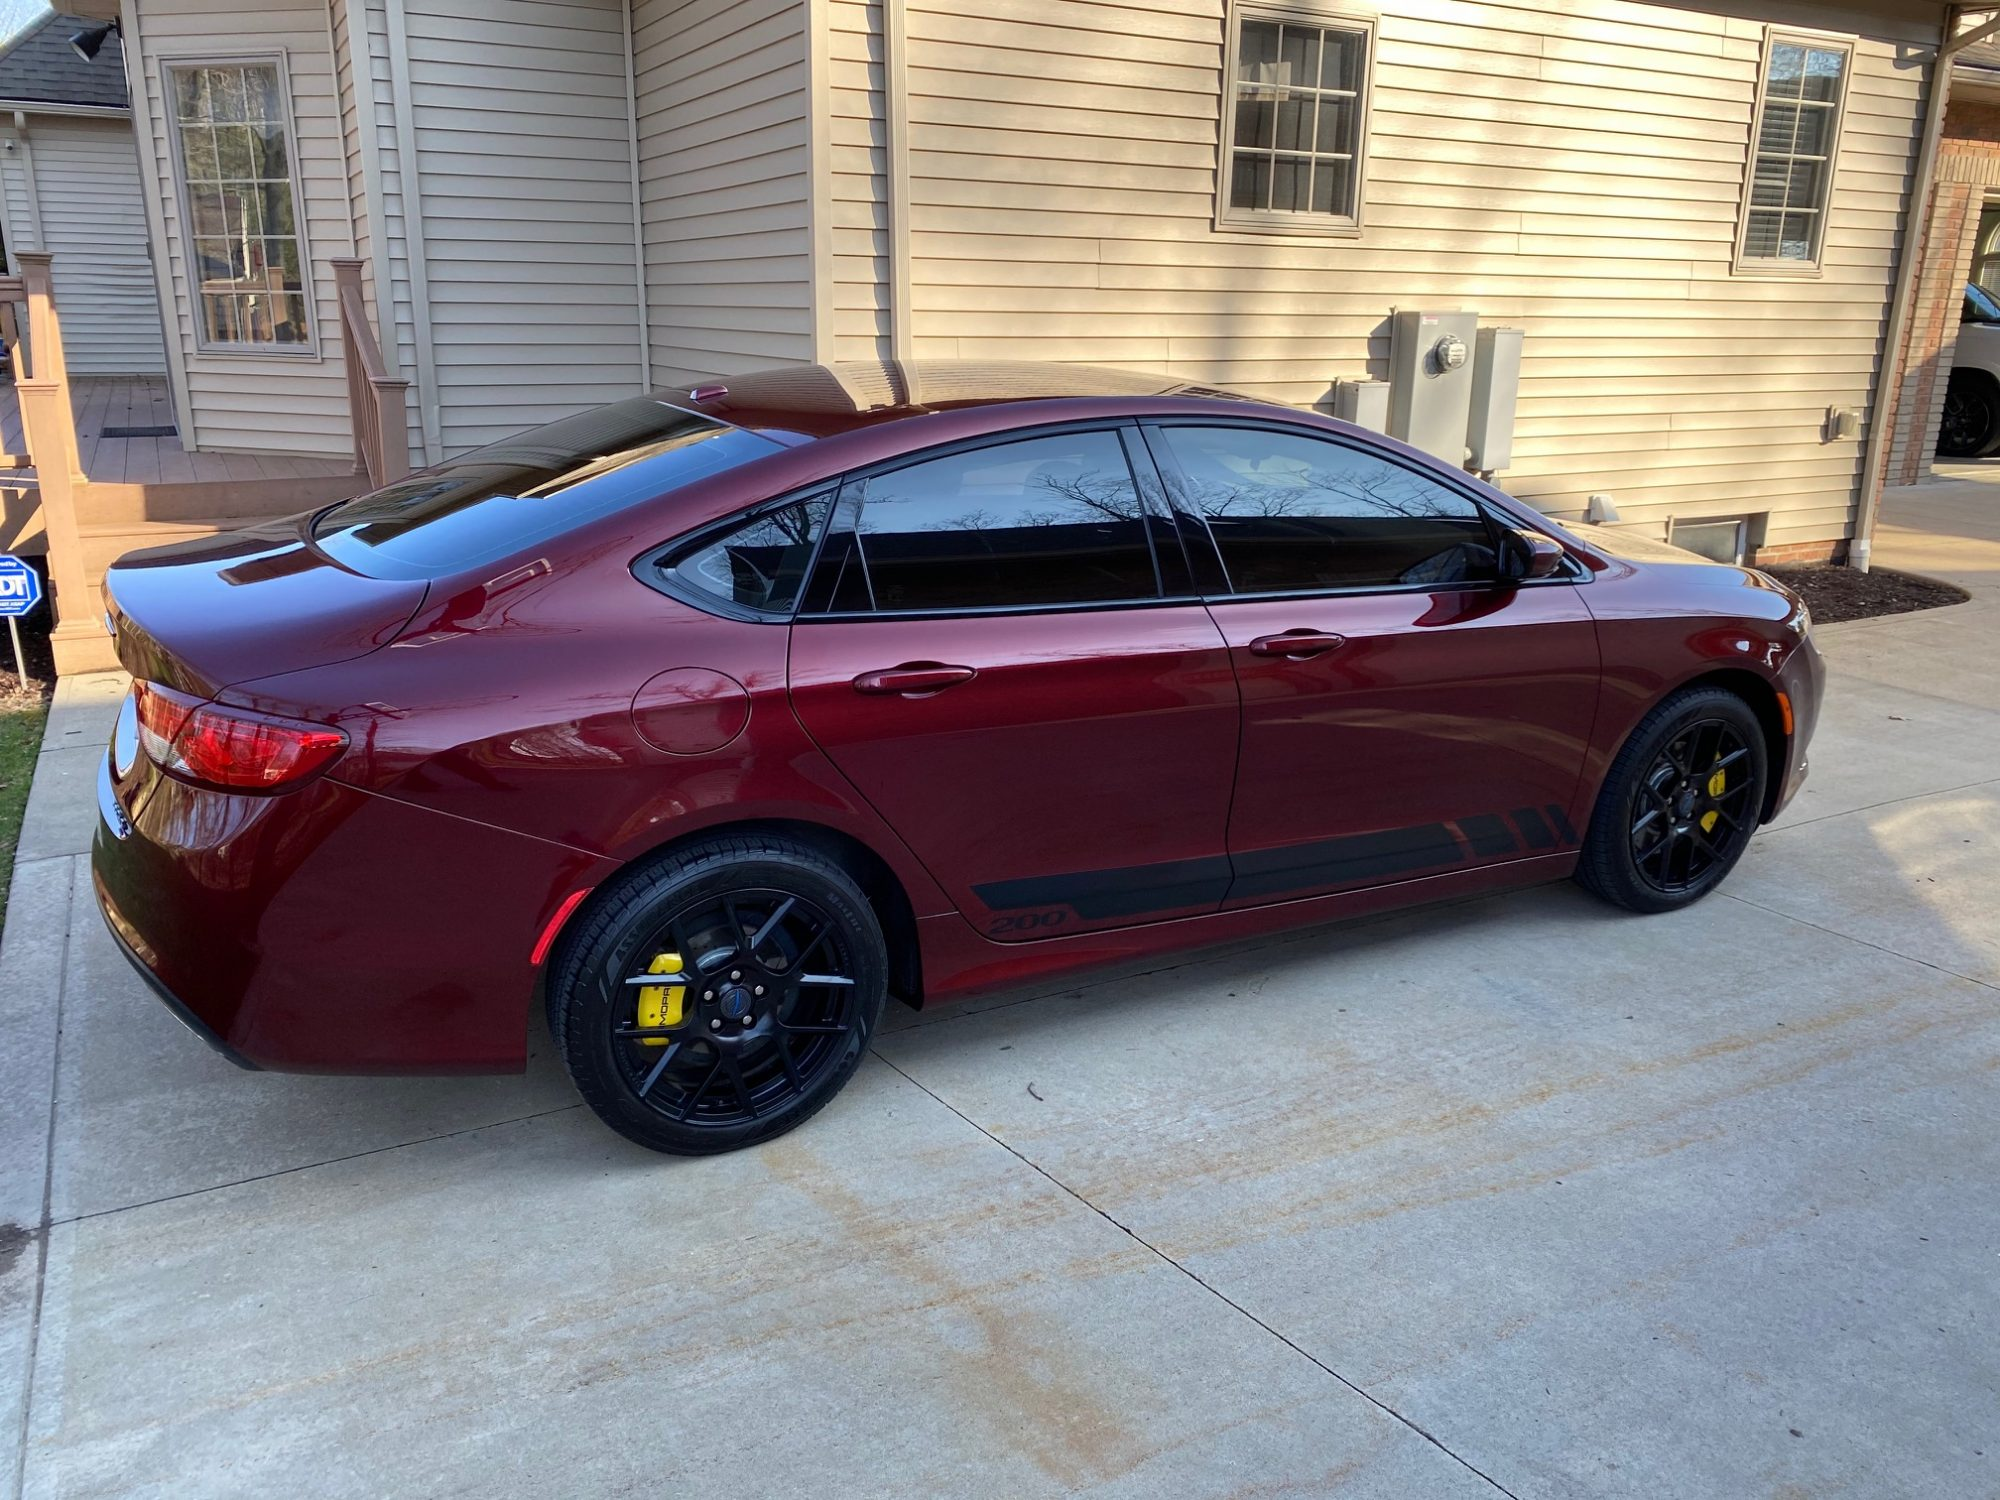 2015 Chrysler 200S AWD loaded with mods